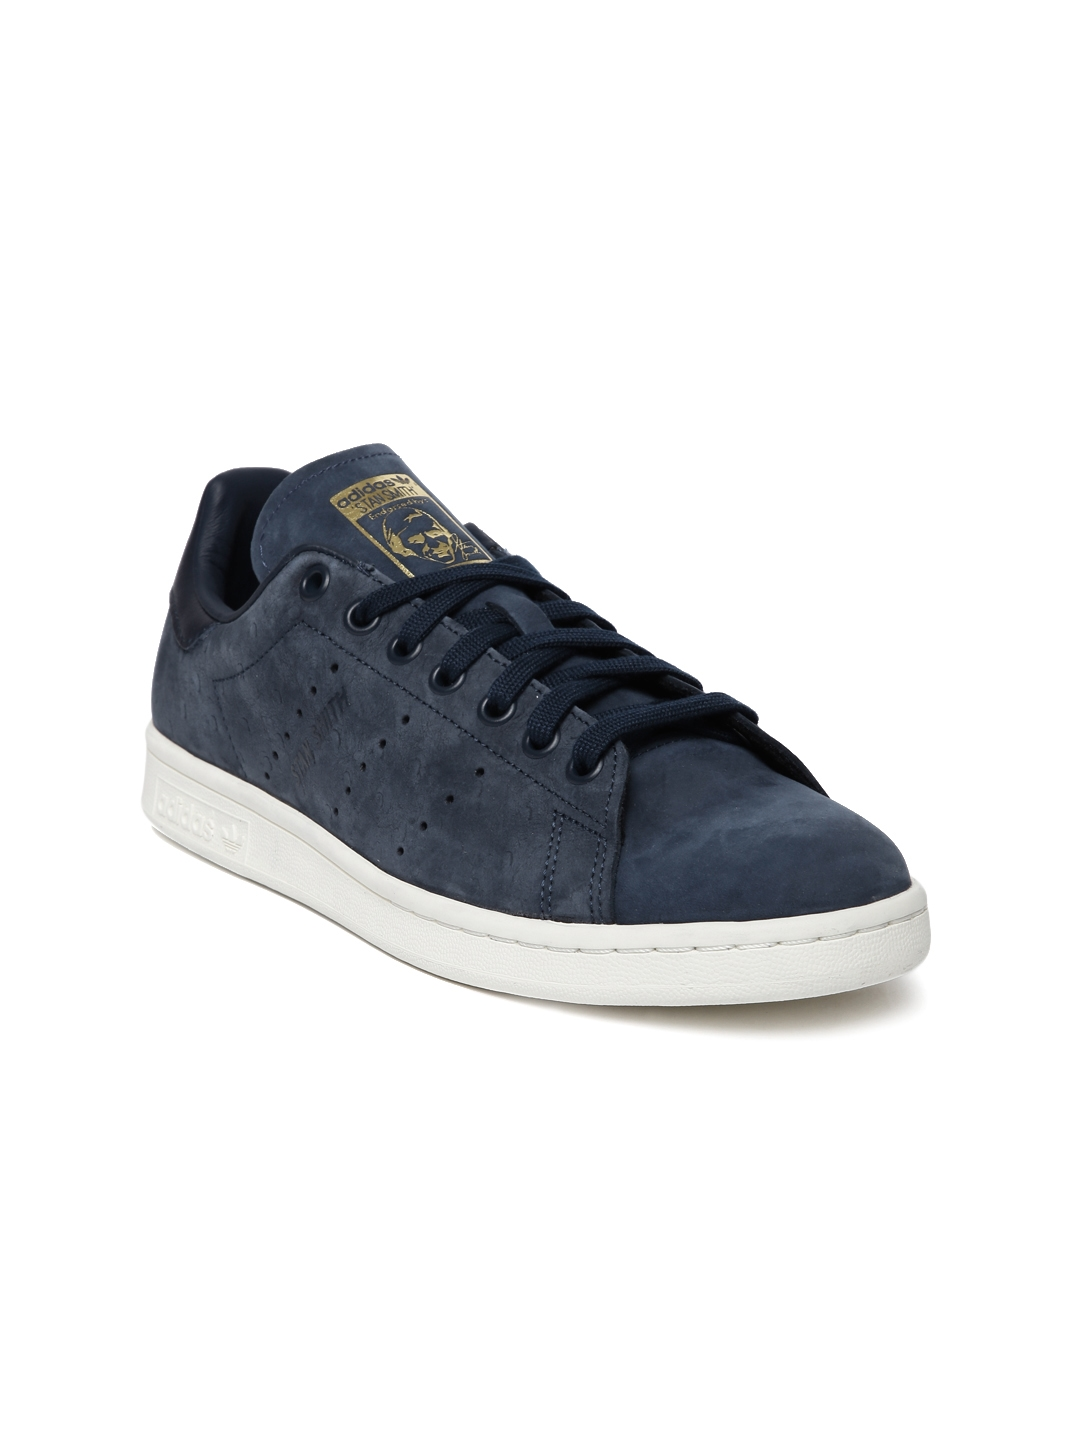 watch cde3f ce427 ADIDAS Originals Women Navy Blue STAN SMITH Sneakers